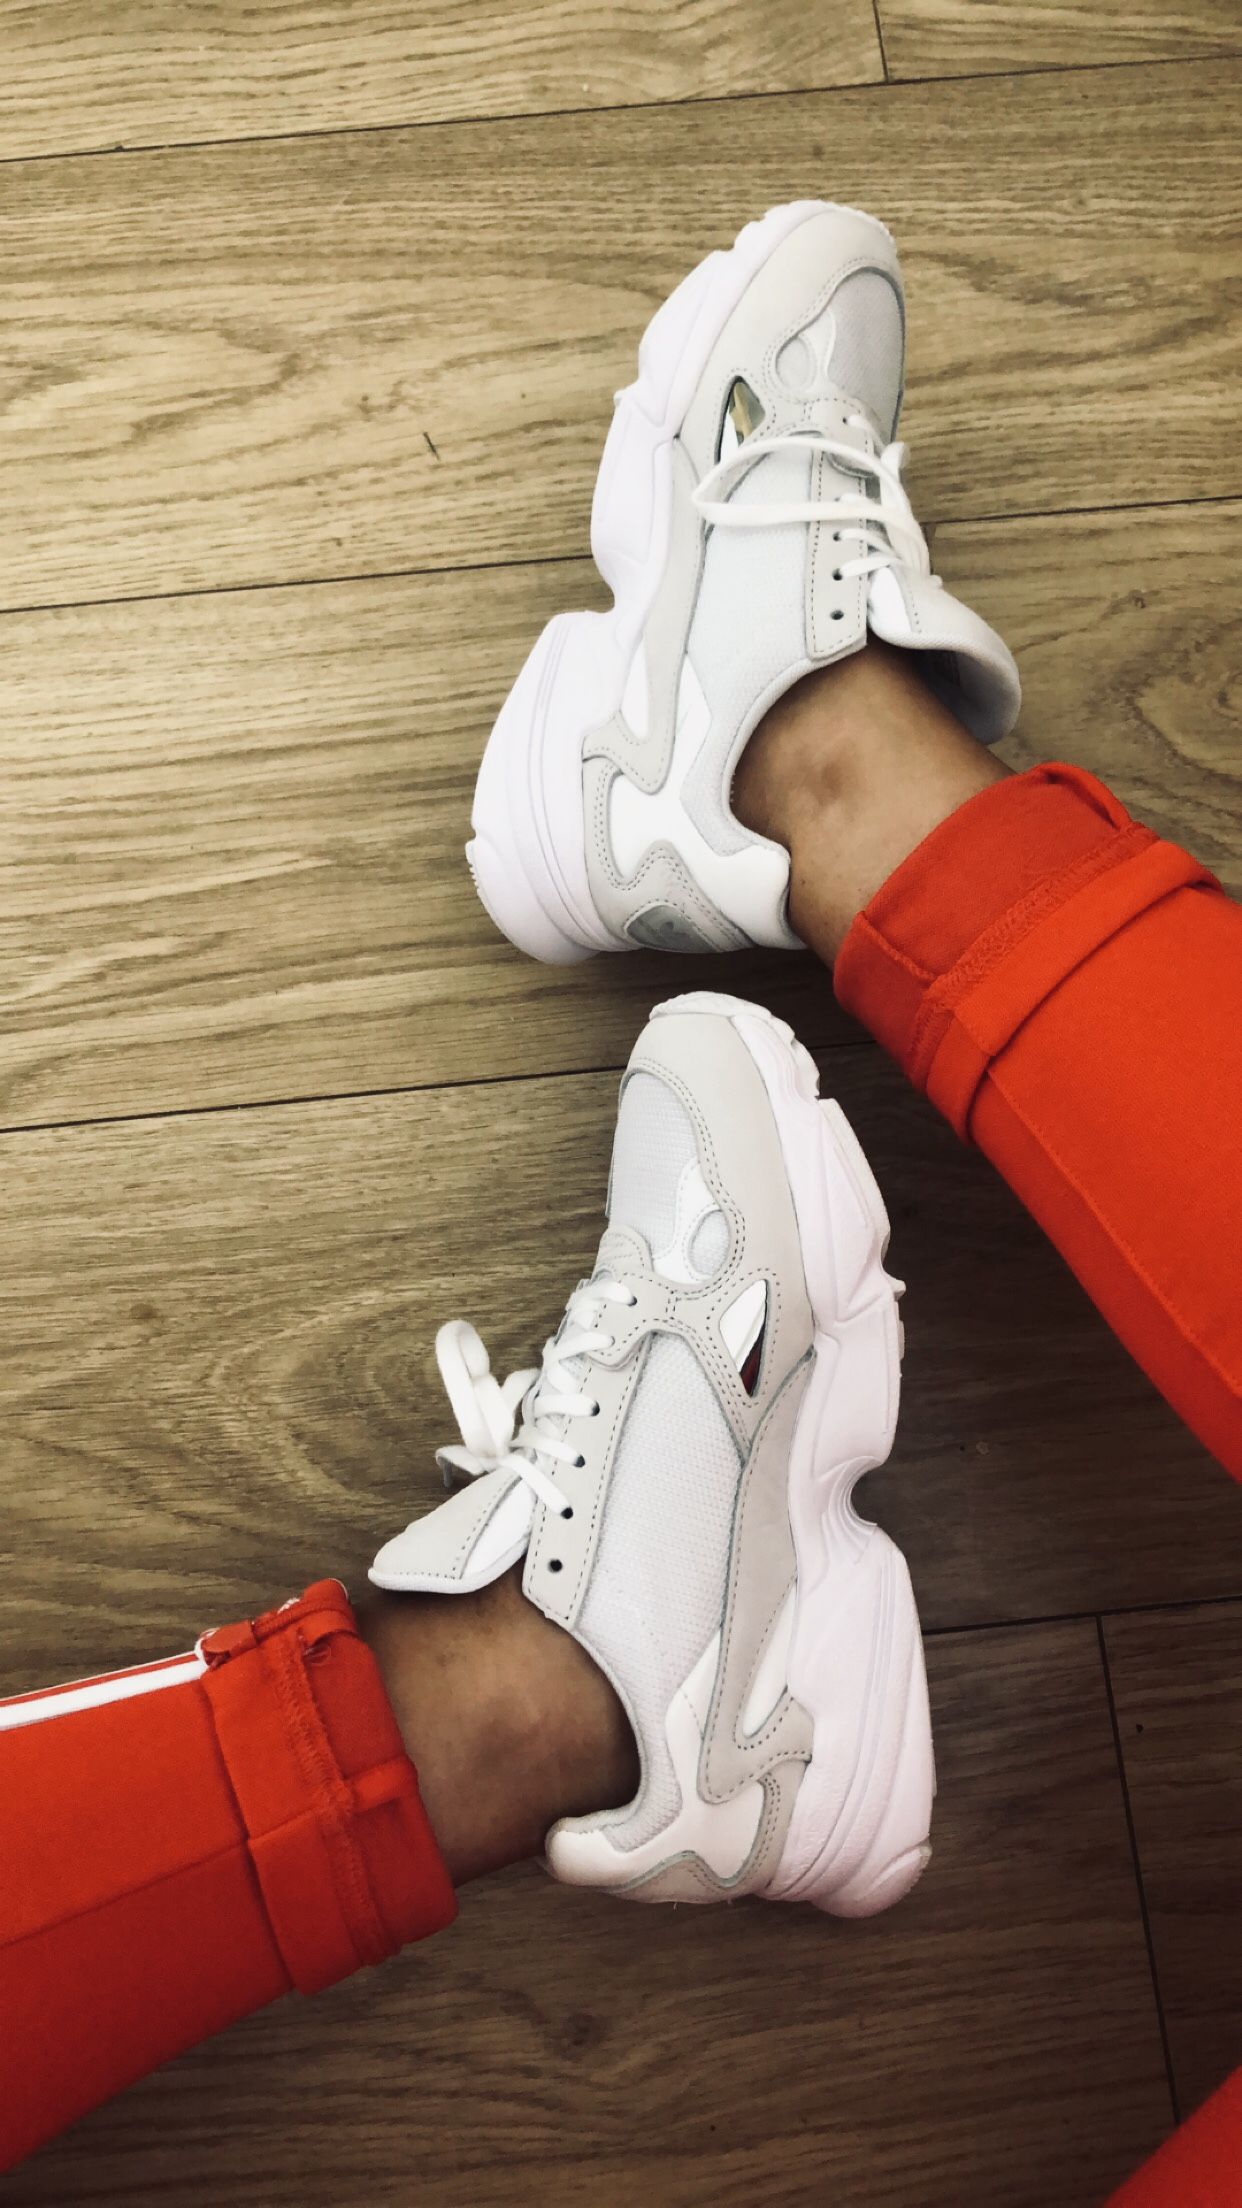 Adidas Falcon White | Shoe boots, Adidas shoes, Shoes